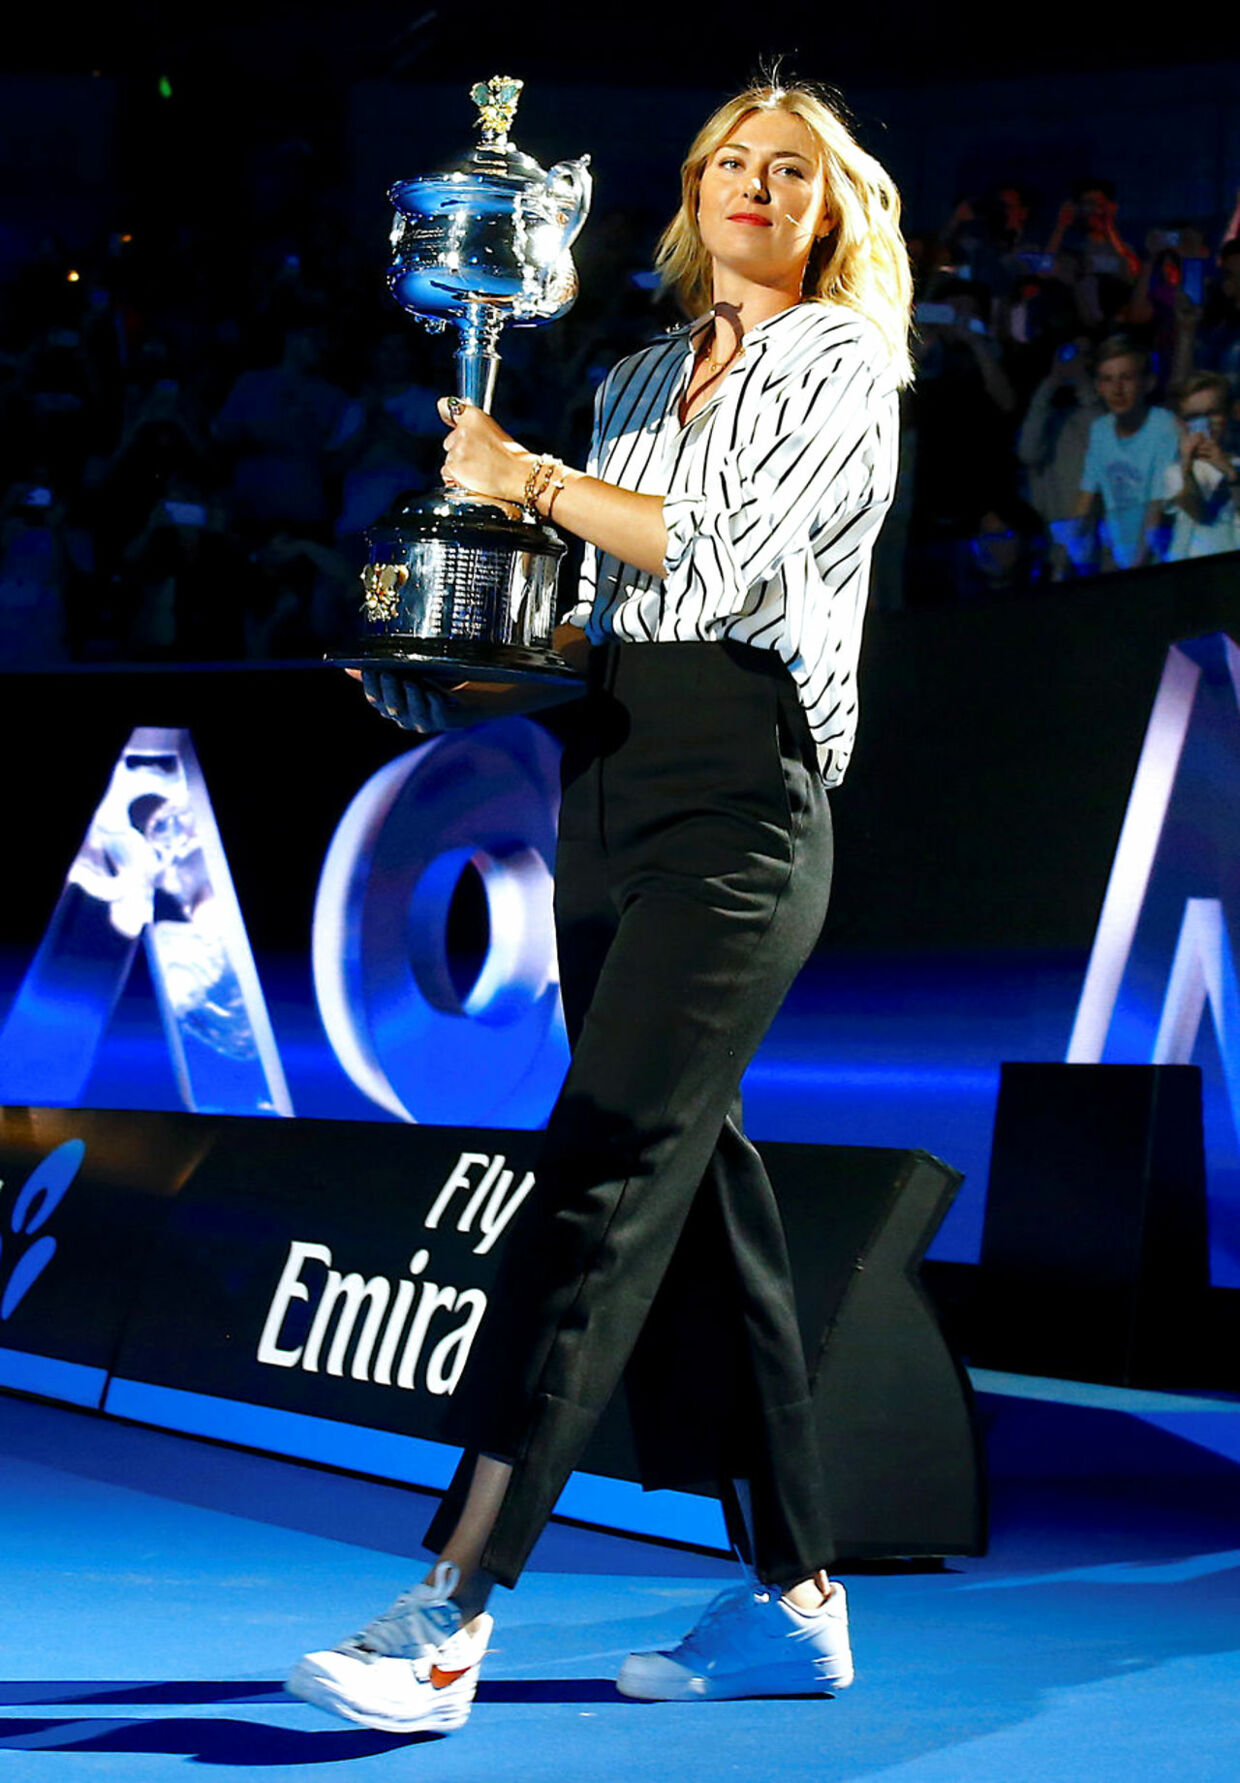 Tennis - Australian Open - Melbourne Park, Melbourne, Australia, January 11, 2018. Russia's Maria Sharapova holds the Women's singles trophy during the official draw ceremony ahead of the Australian Open tennis tournament. REUTERS/David Gray